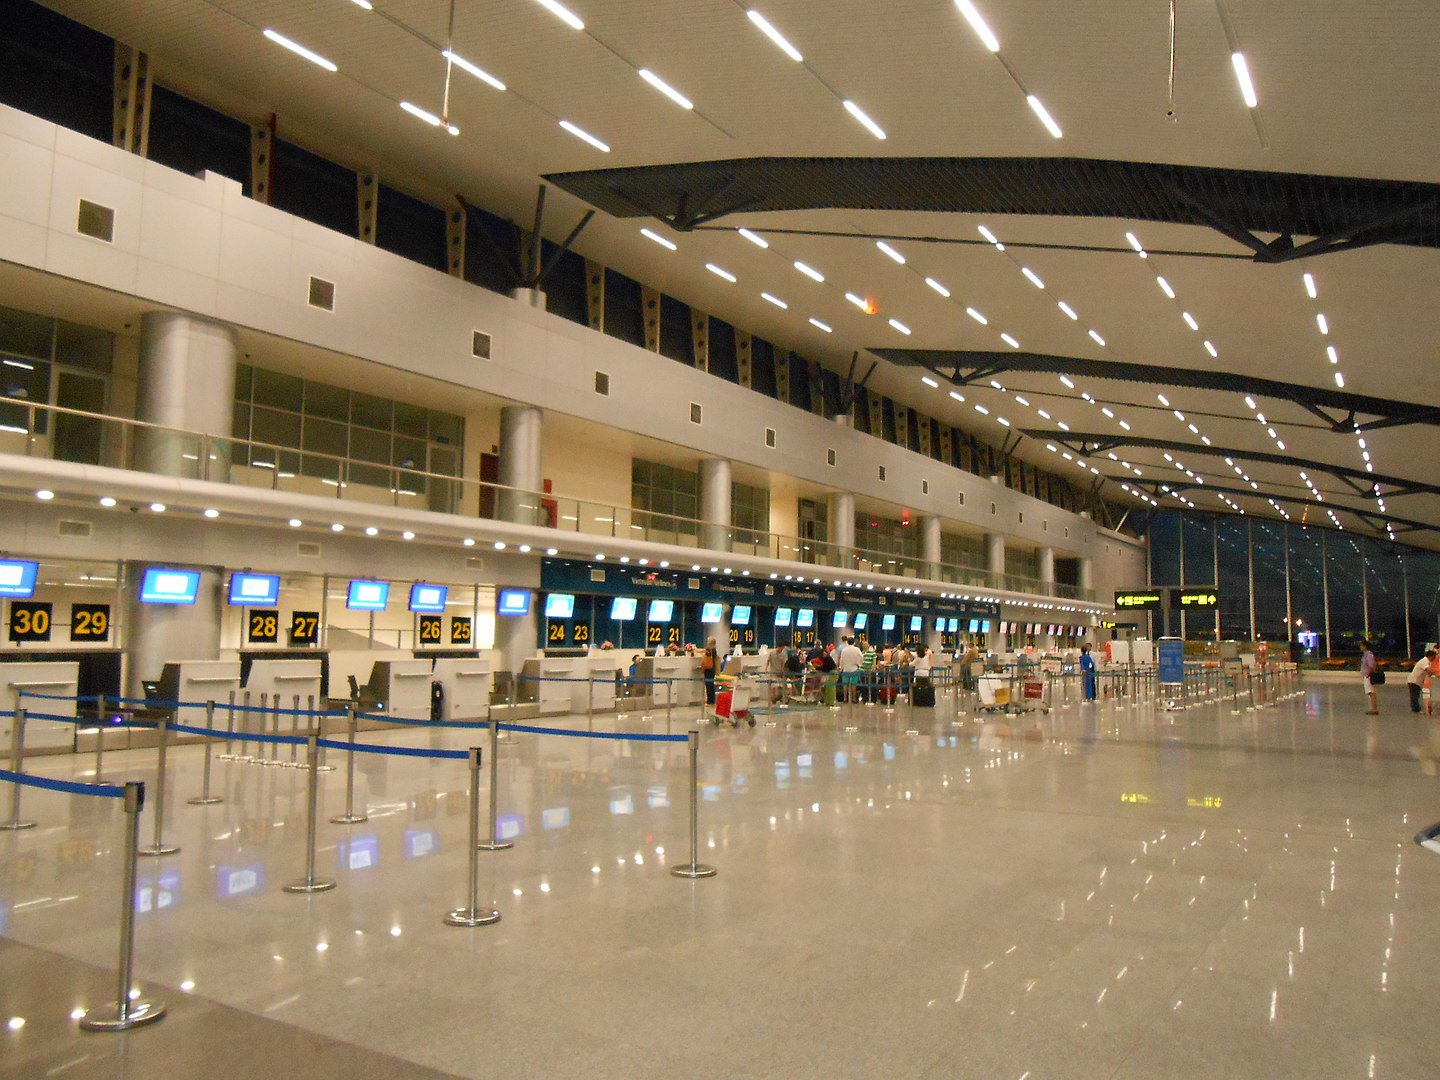 Image of the ticket counter at Da Nang International Airport in Vietnam